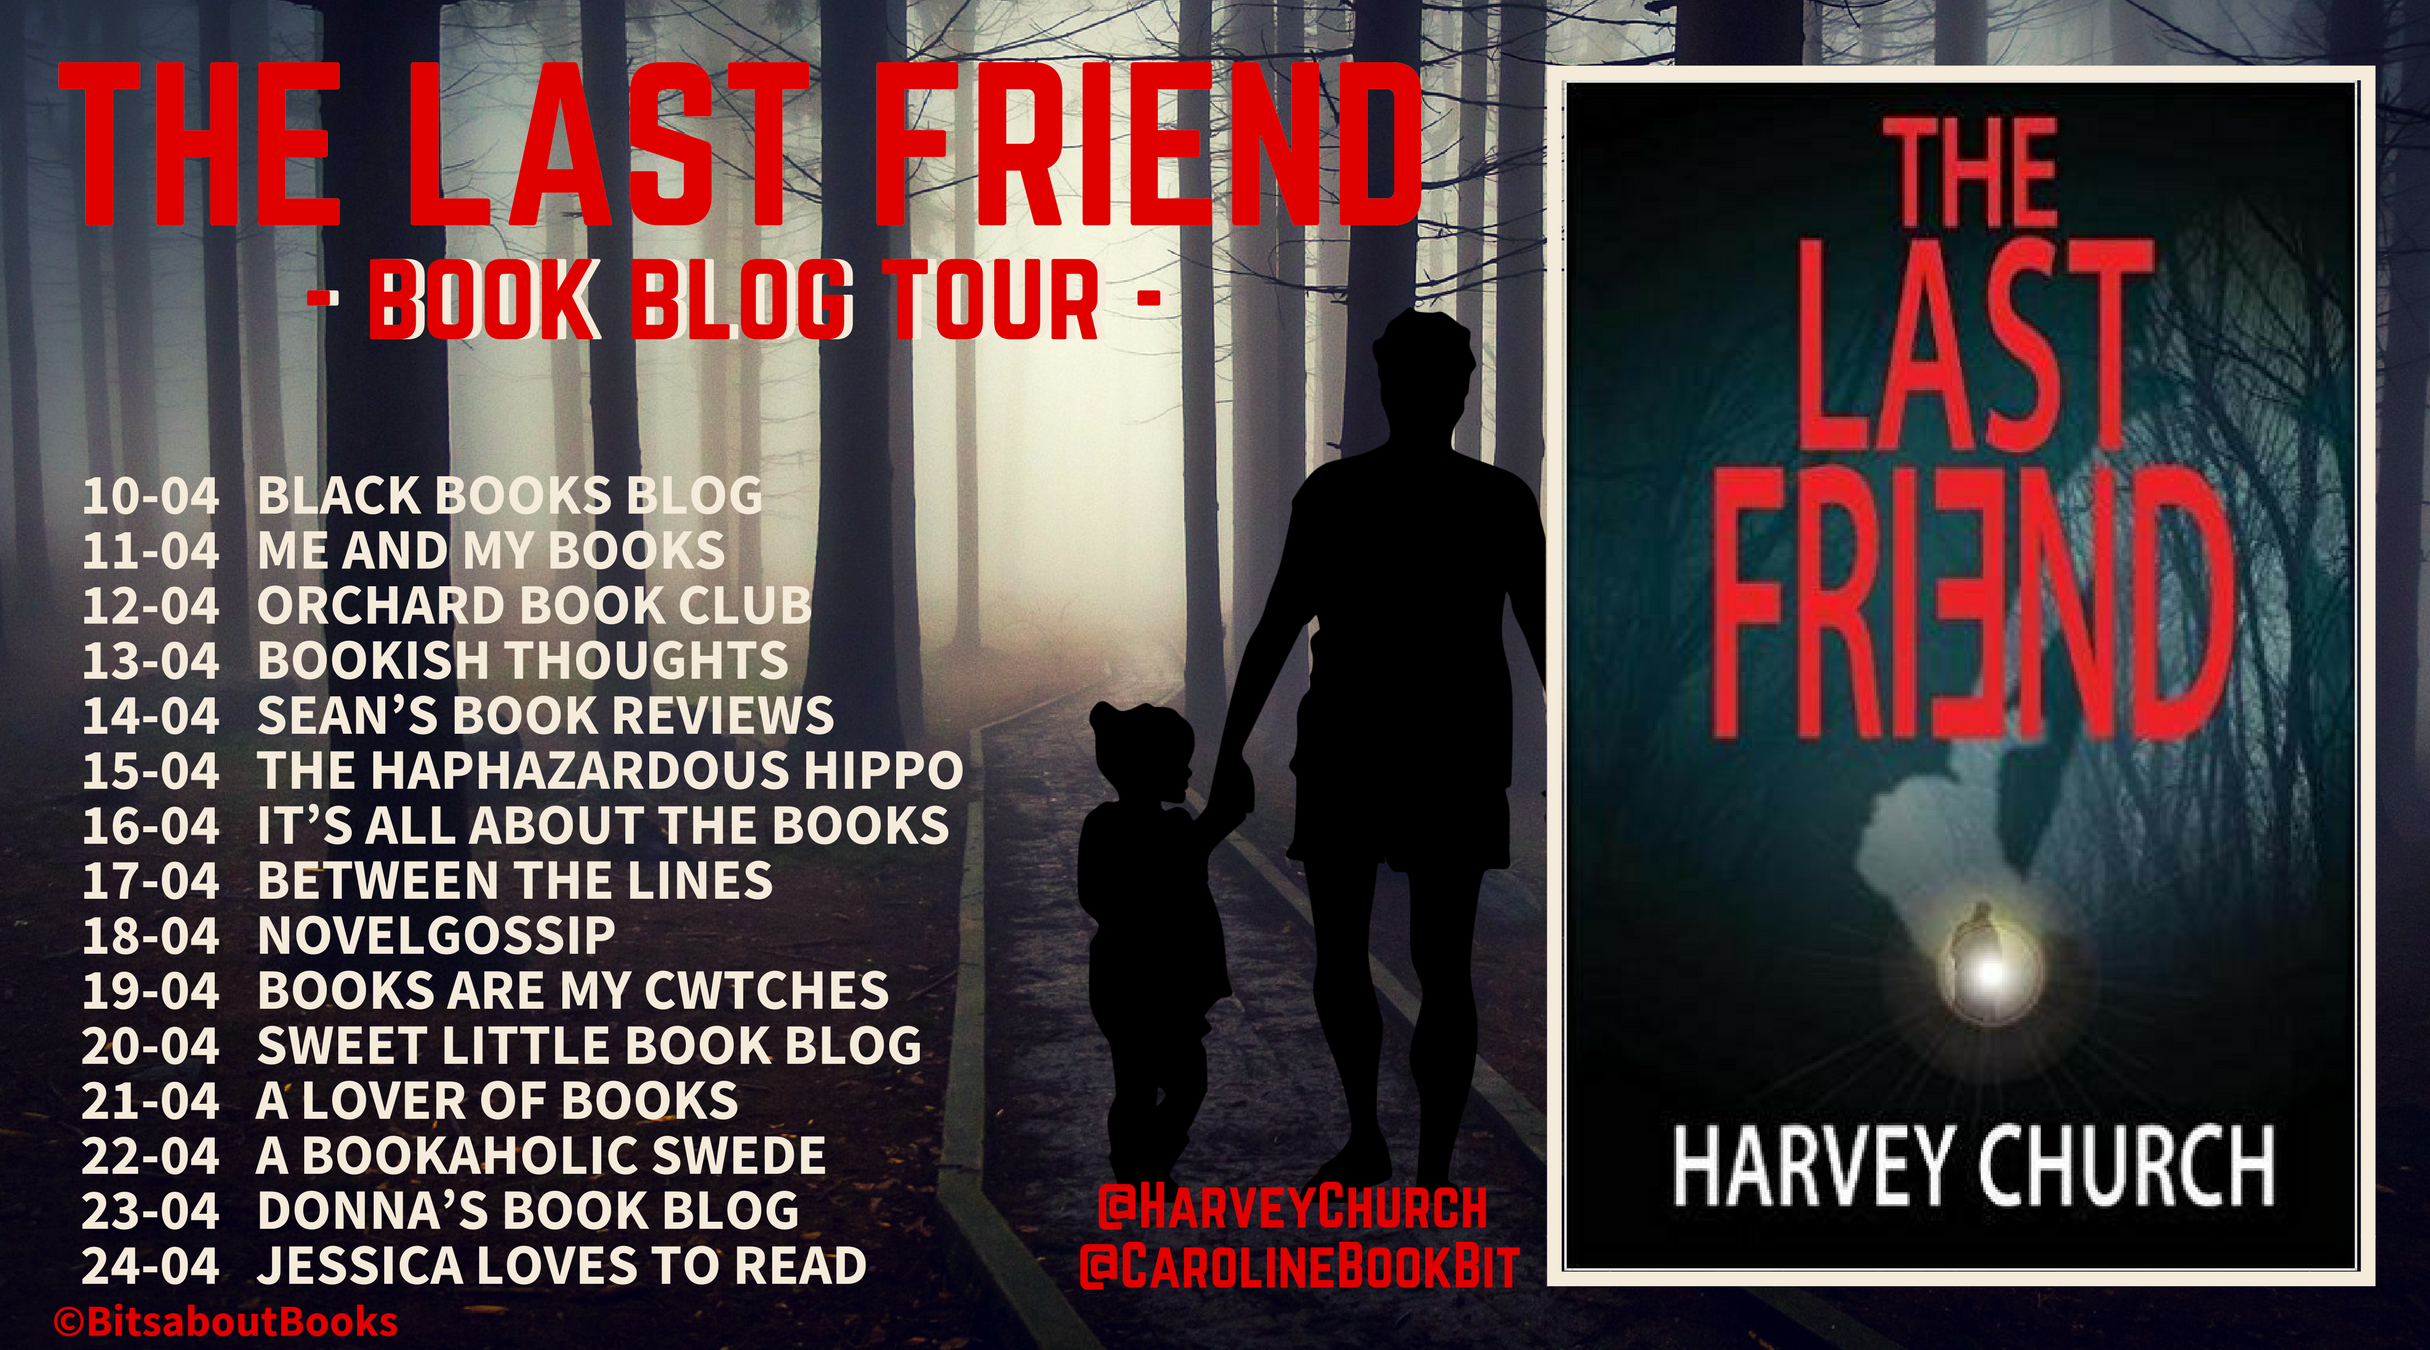 Book Blog Tour Poster The Last Friend - Harvey Church.png